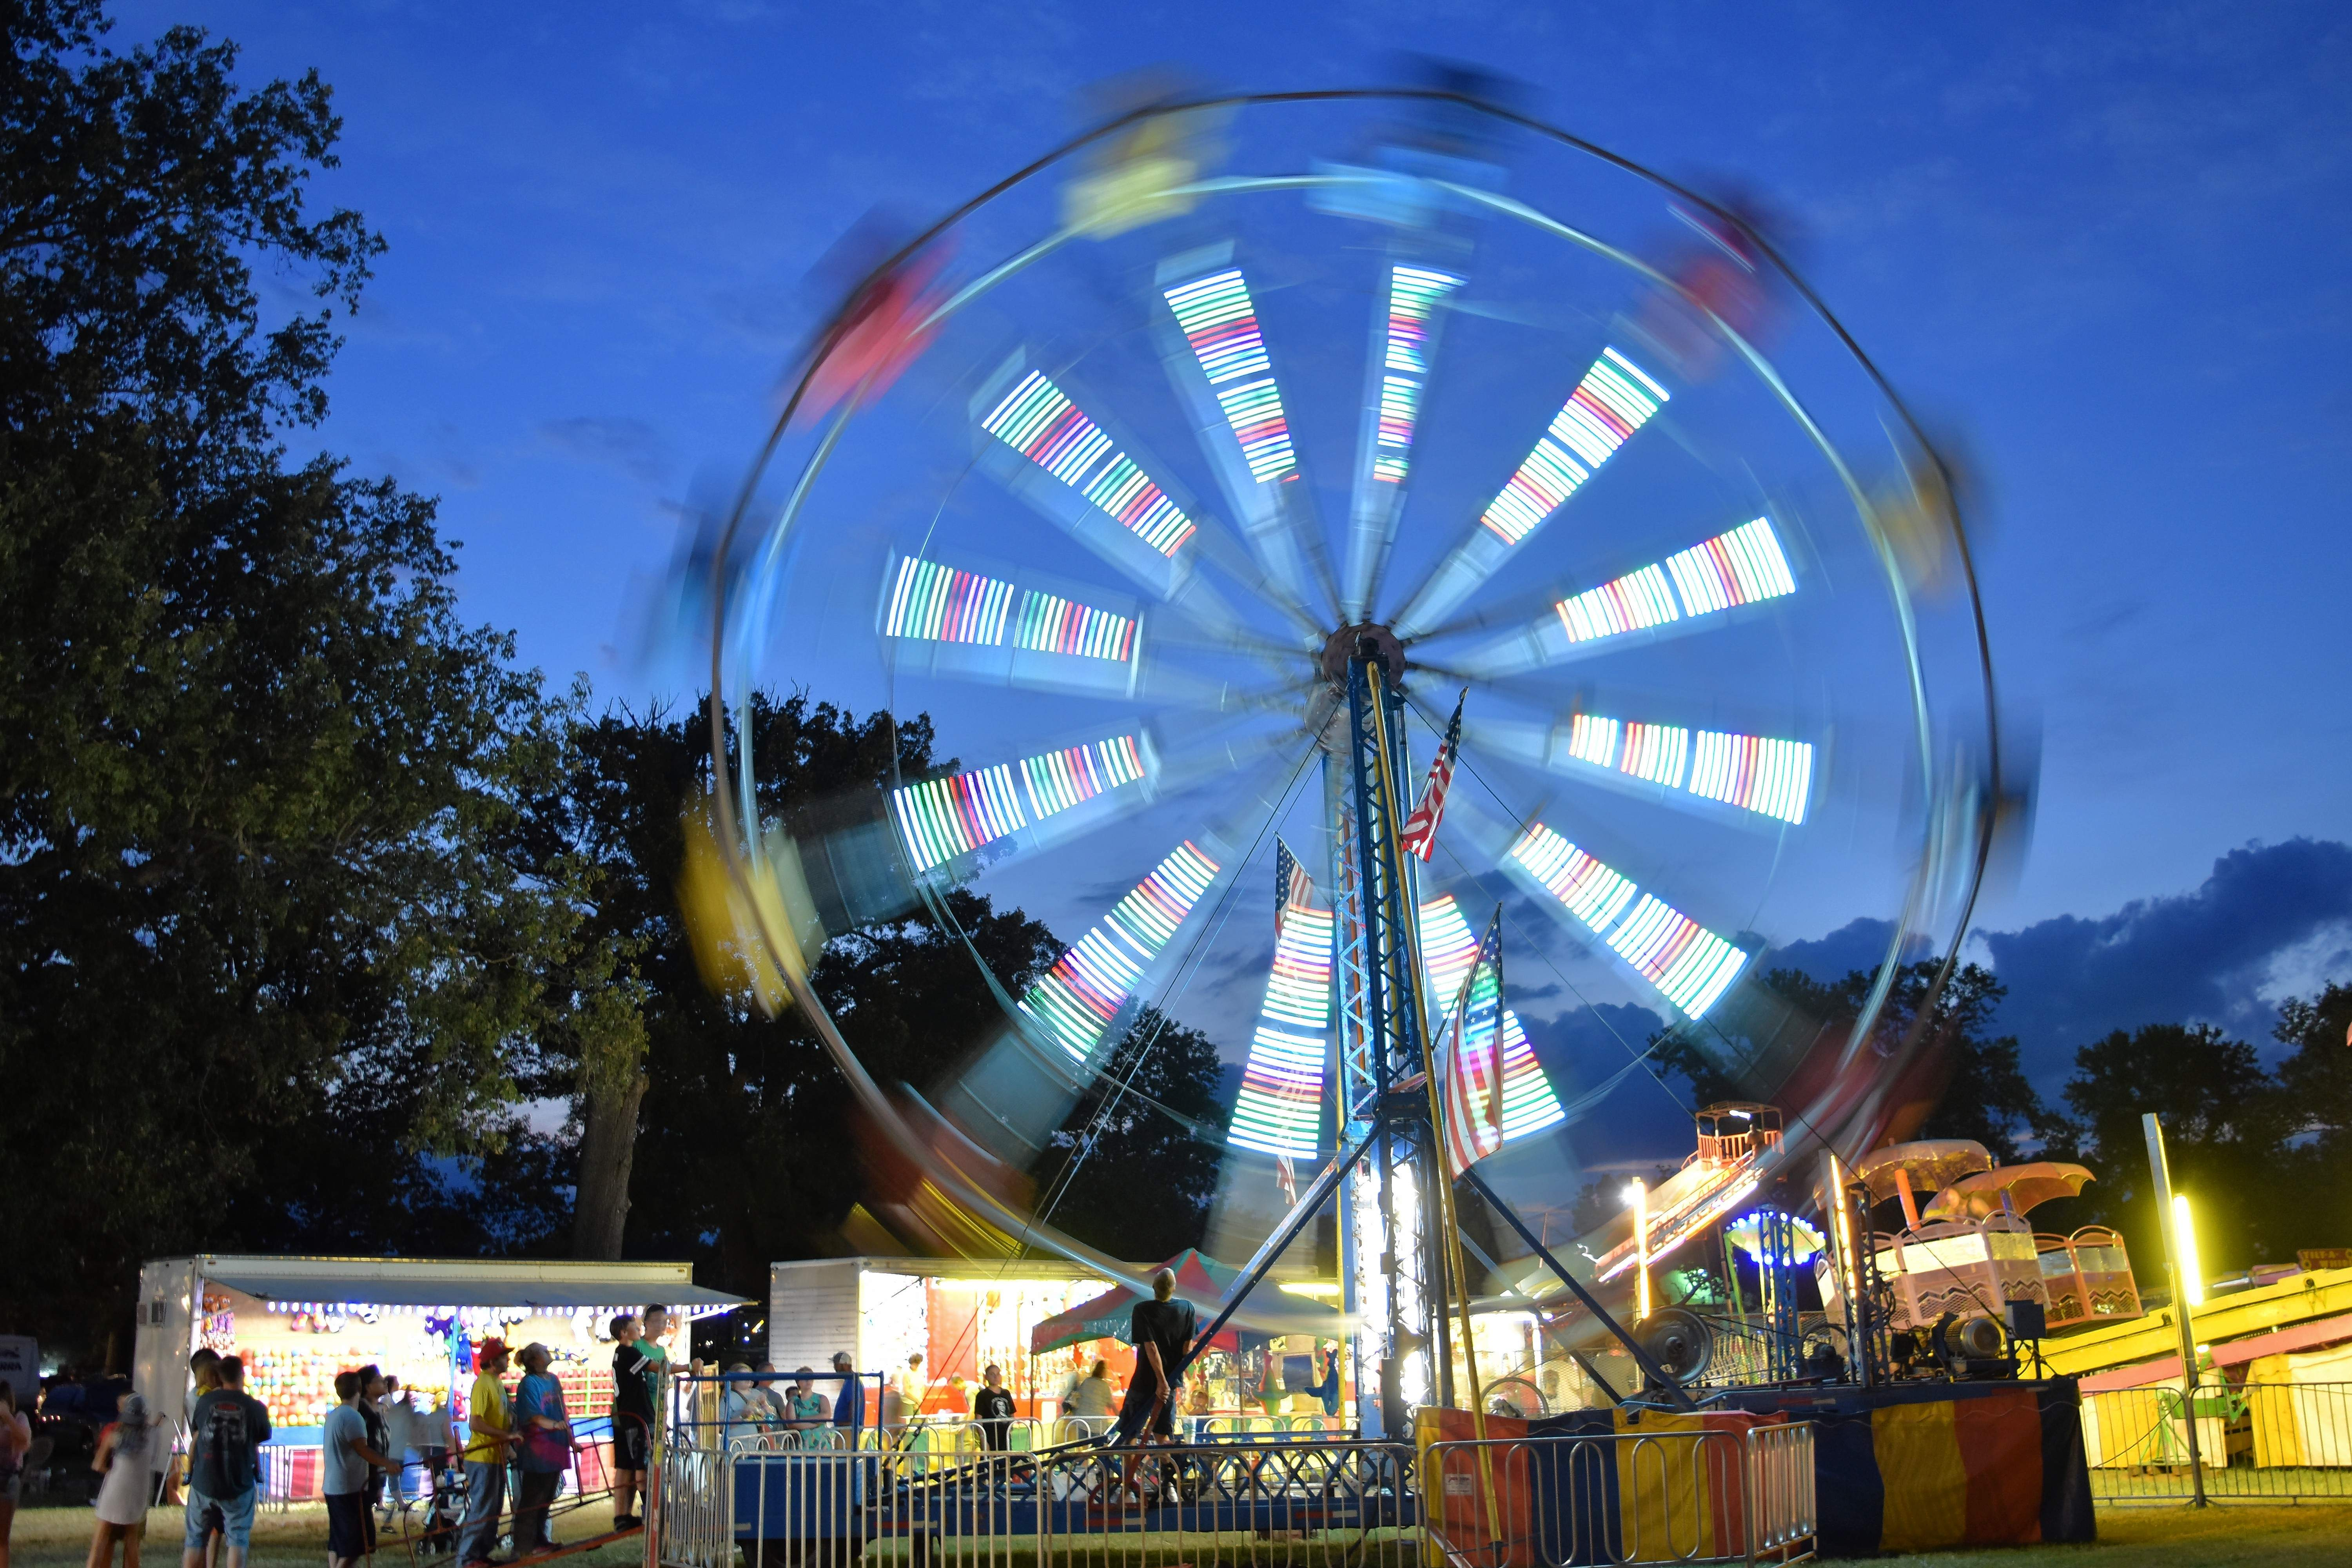 The Ferris wheel spins Saturday night at the Saline County Fair.